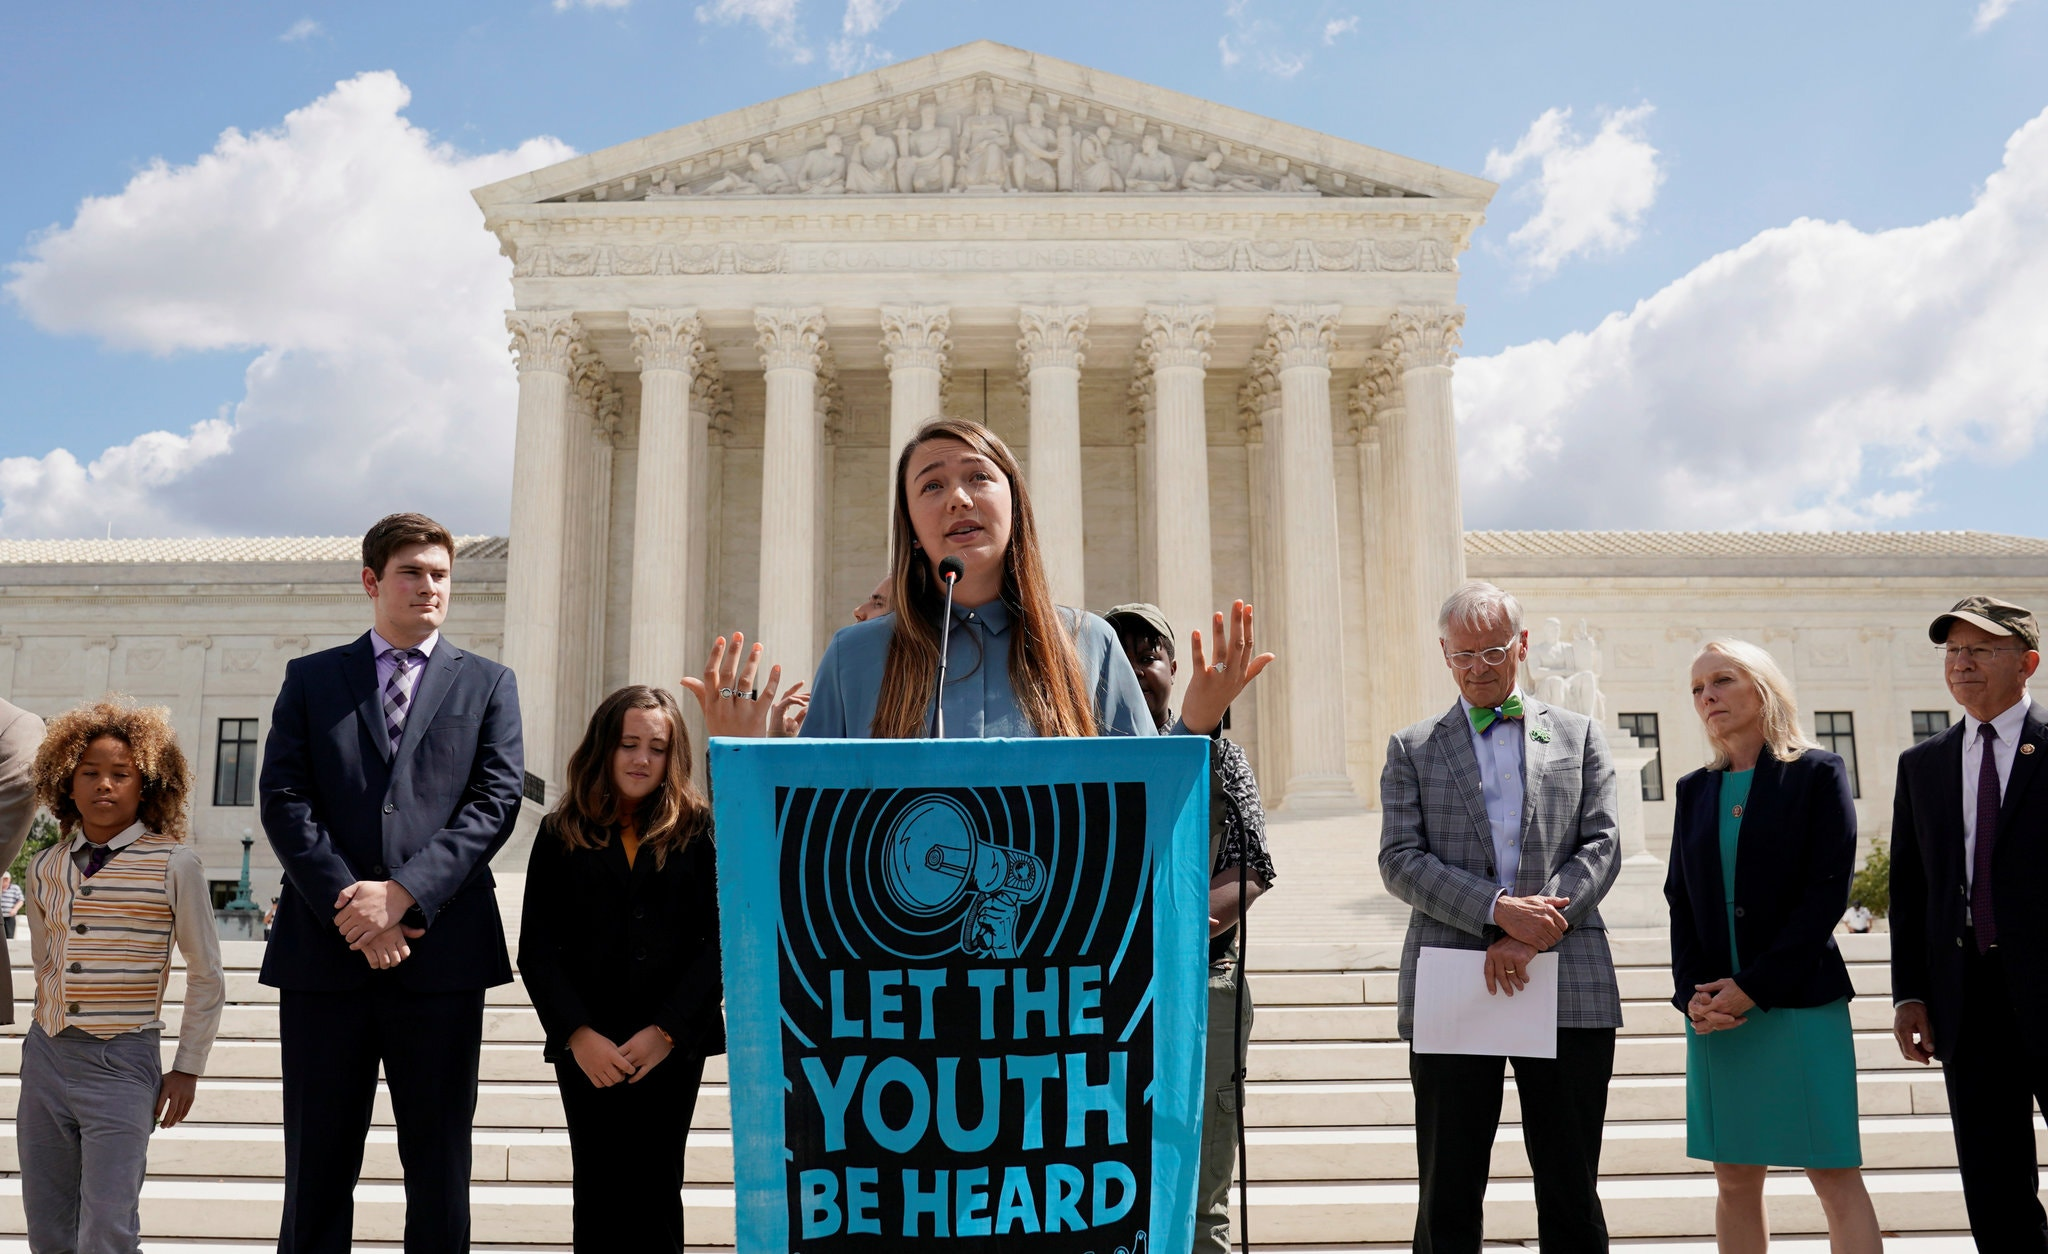 Climate Cop-out: 9th Circuit Shoots Down 'Landmark' Lawsuit by 21 Youths While Saying 'Eve of Destruction' is Near